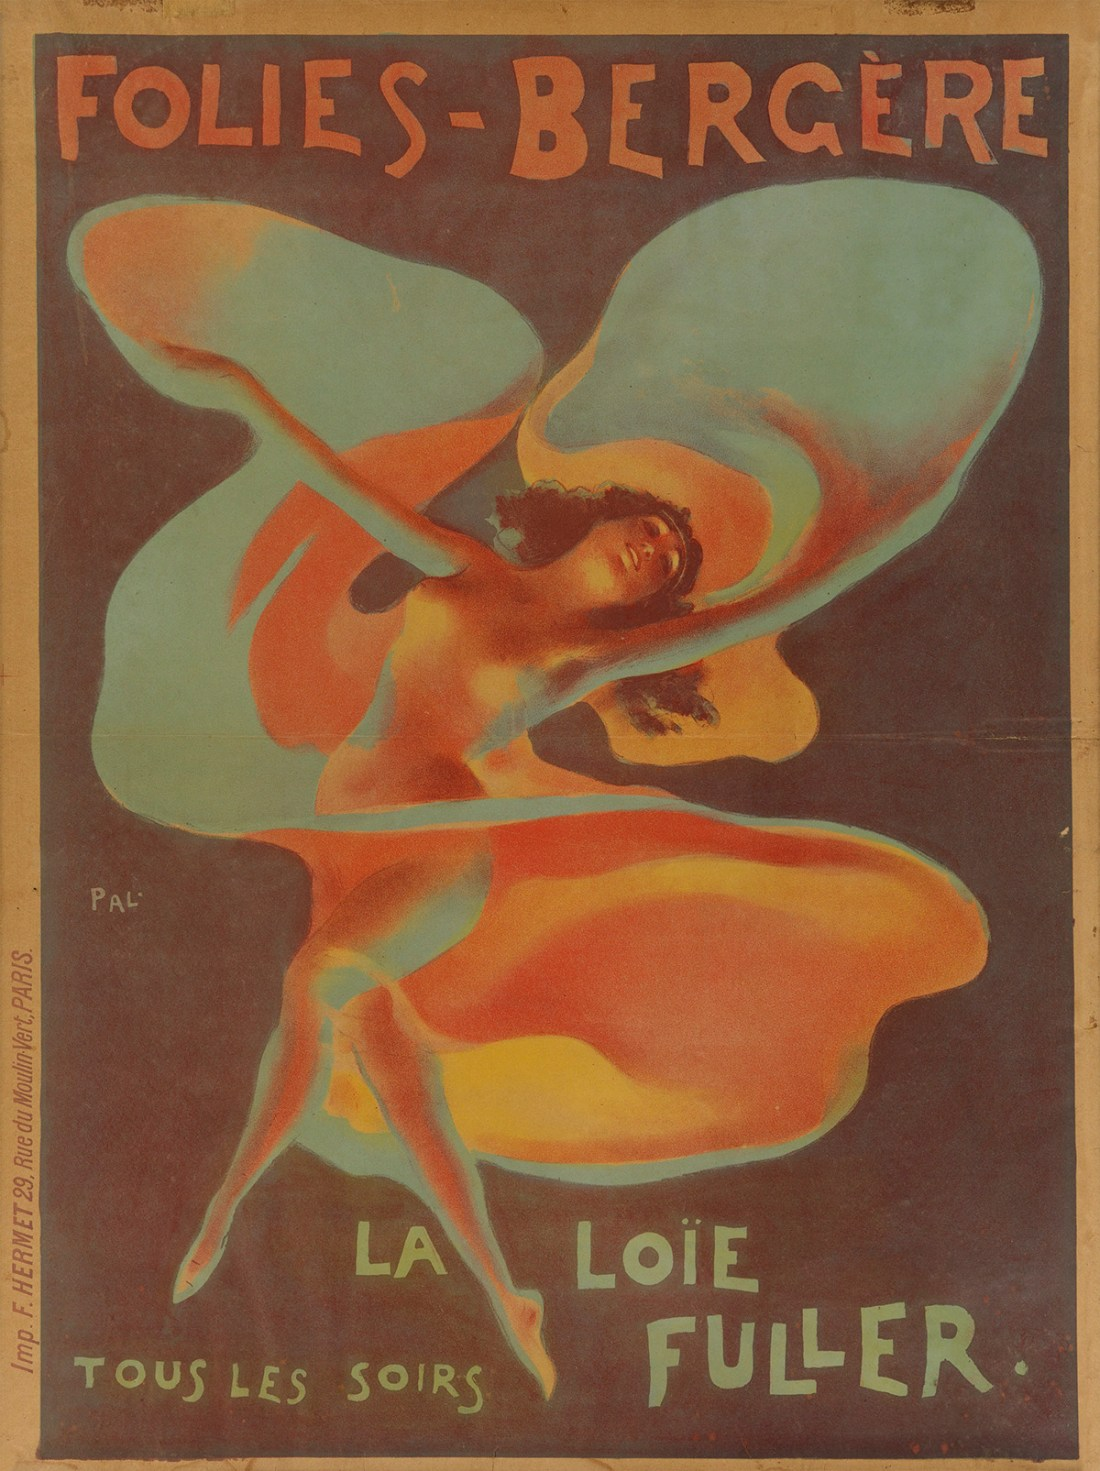 One of five posters designed to advertise the music hall star Loïe Fuller's performances at the Folies Bergère.